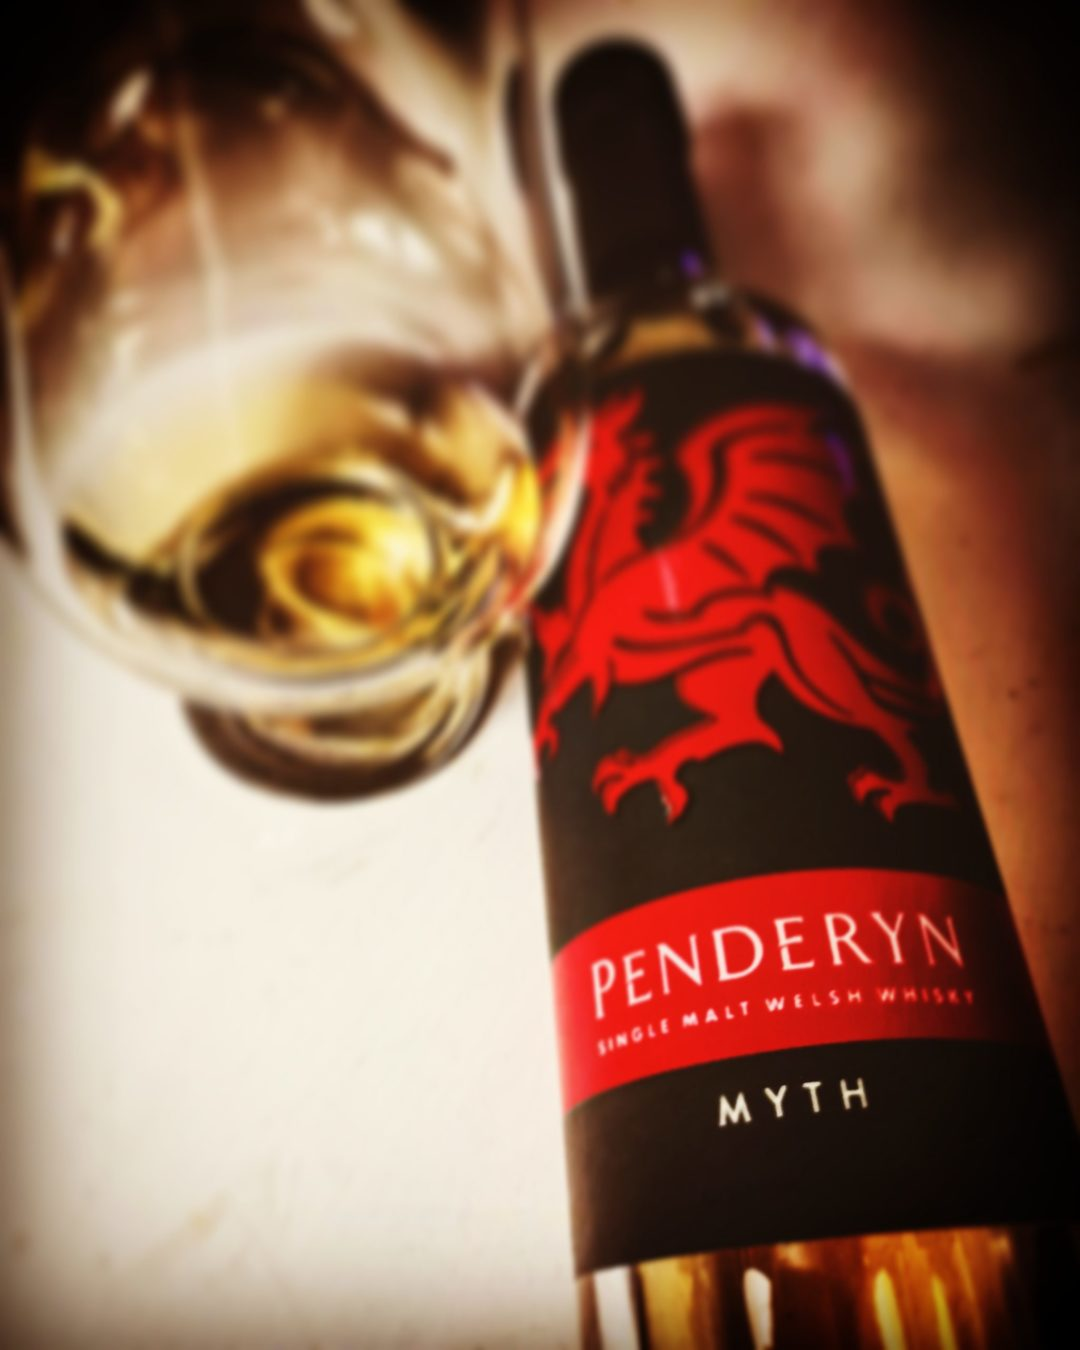 Penderyn Myth Single Malt Welsh Whisky